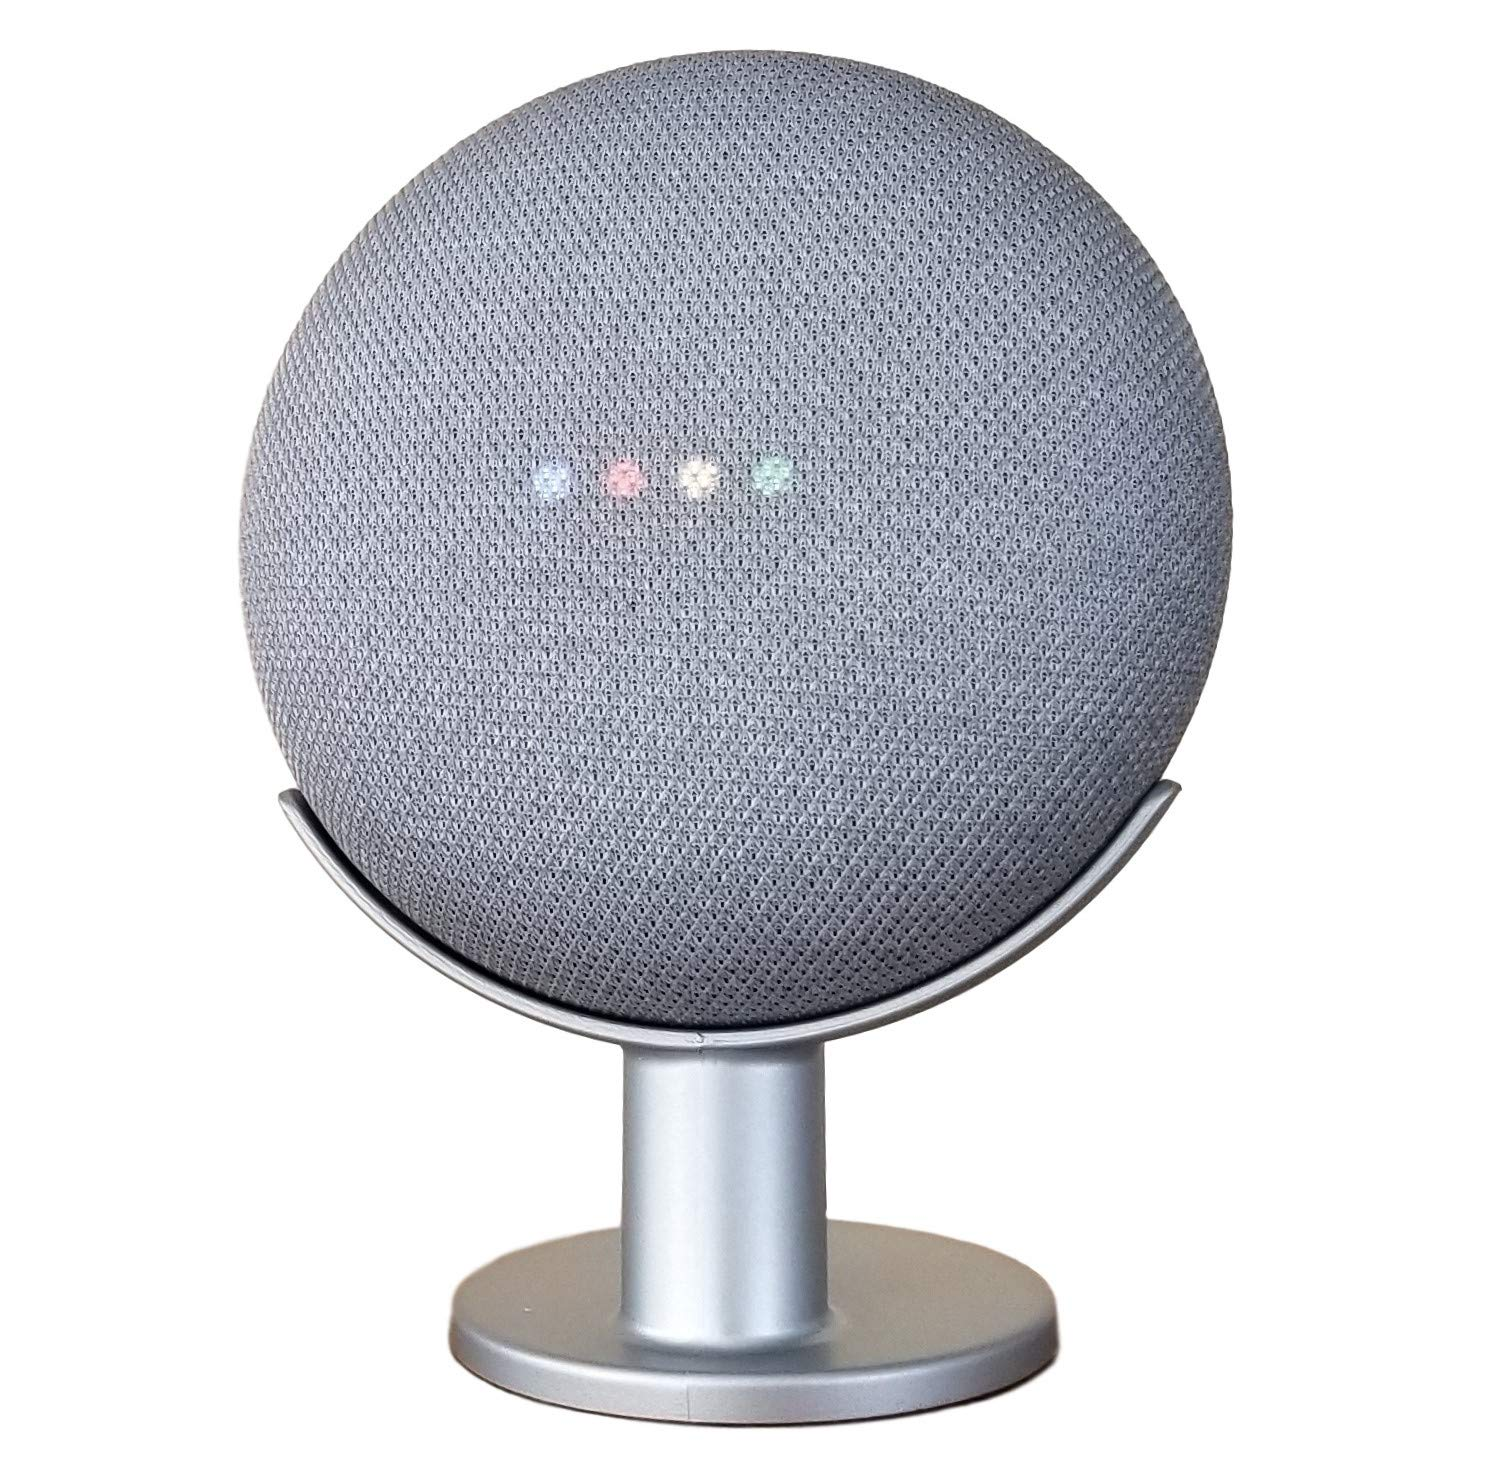 Mount Genie Google Home Mini Pedestal: Improves Sound Visibility and Appearance - Cleanest Mount Holder Stand for Google Mini - Designed in USA (Silver)